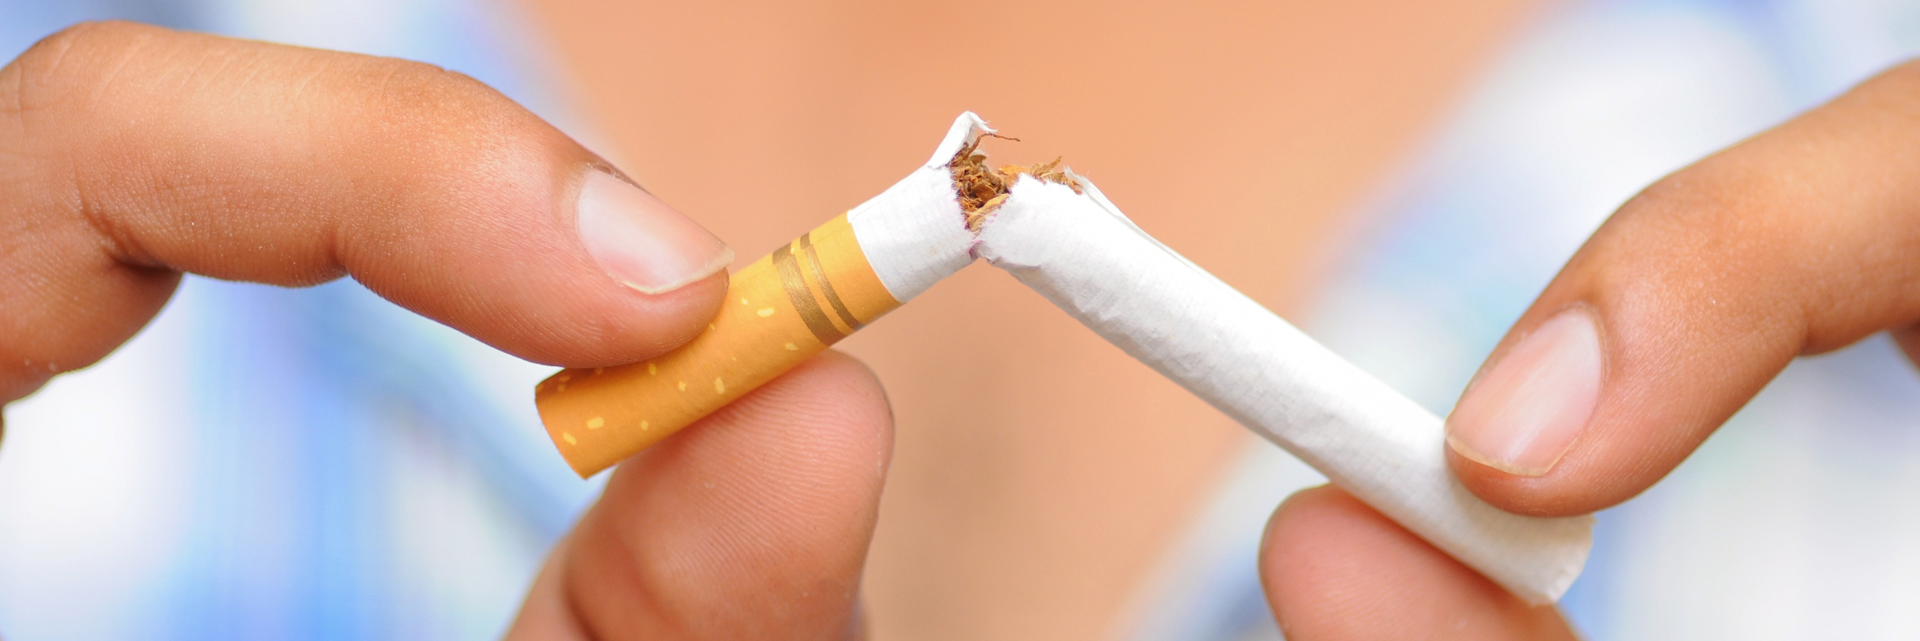 Smoking ban in England and Wales - Centre for Public Impact